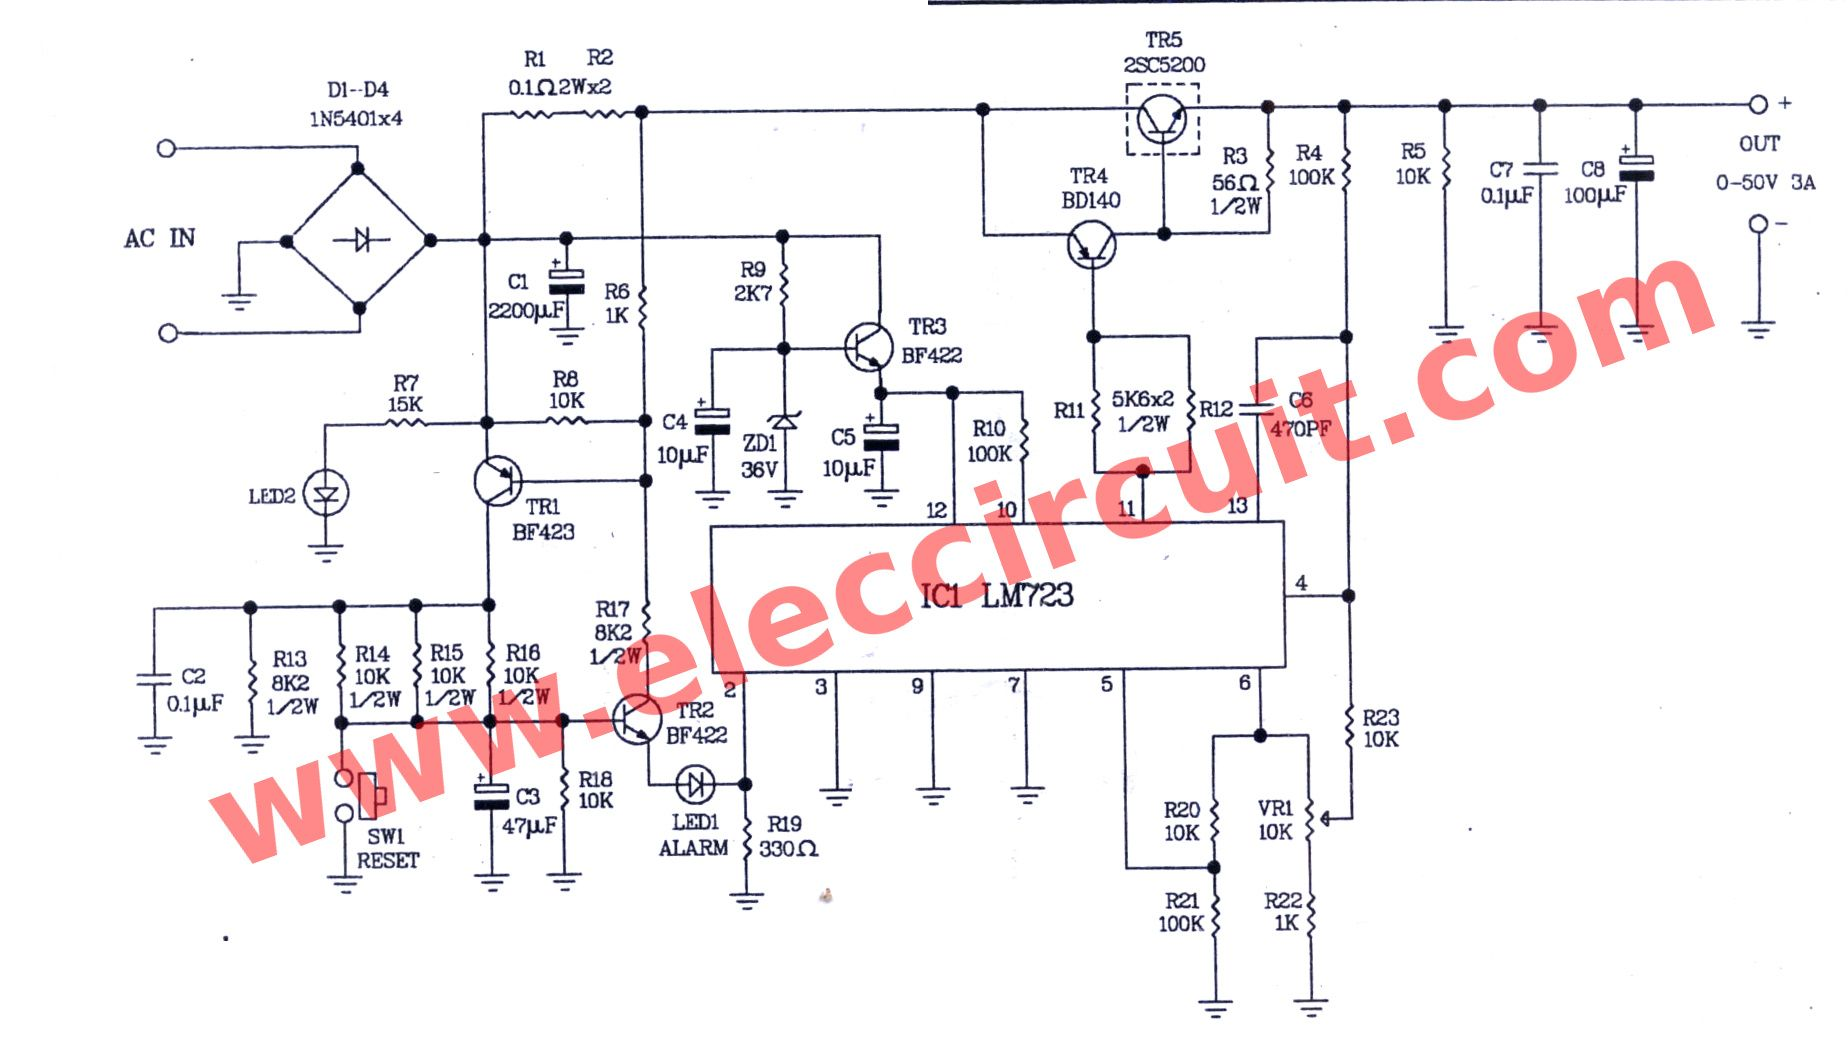 medium resolution of this regulator is 0 50v variable power supply circuit 3a that adjust output voltage 0v to 50 volts and important is the overcurrent protection at 3 a